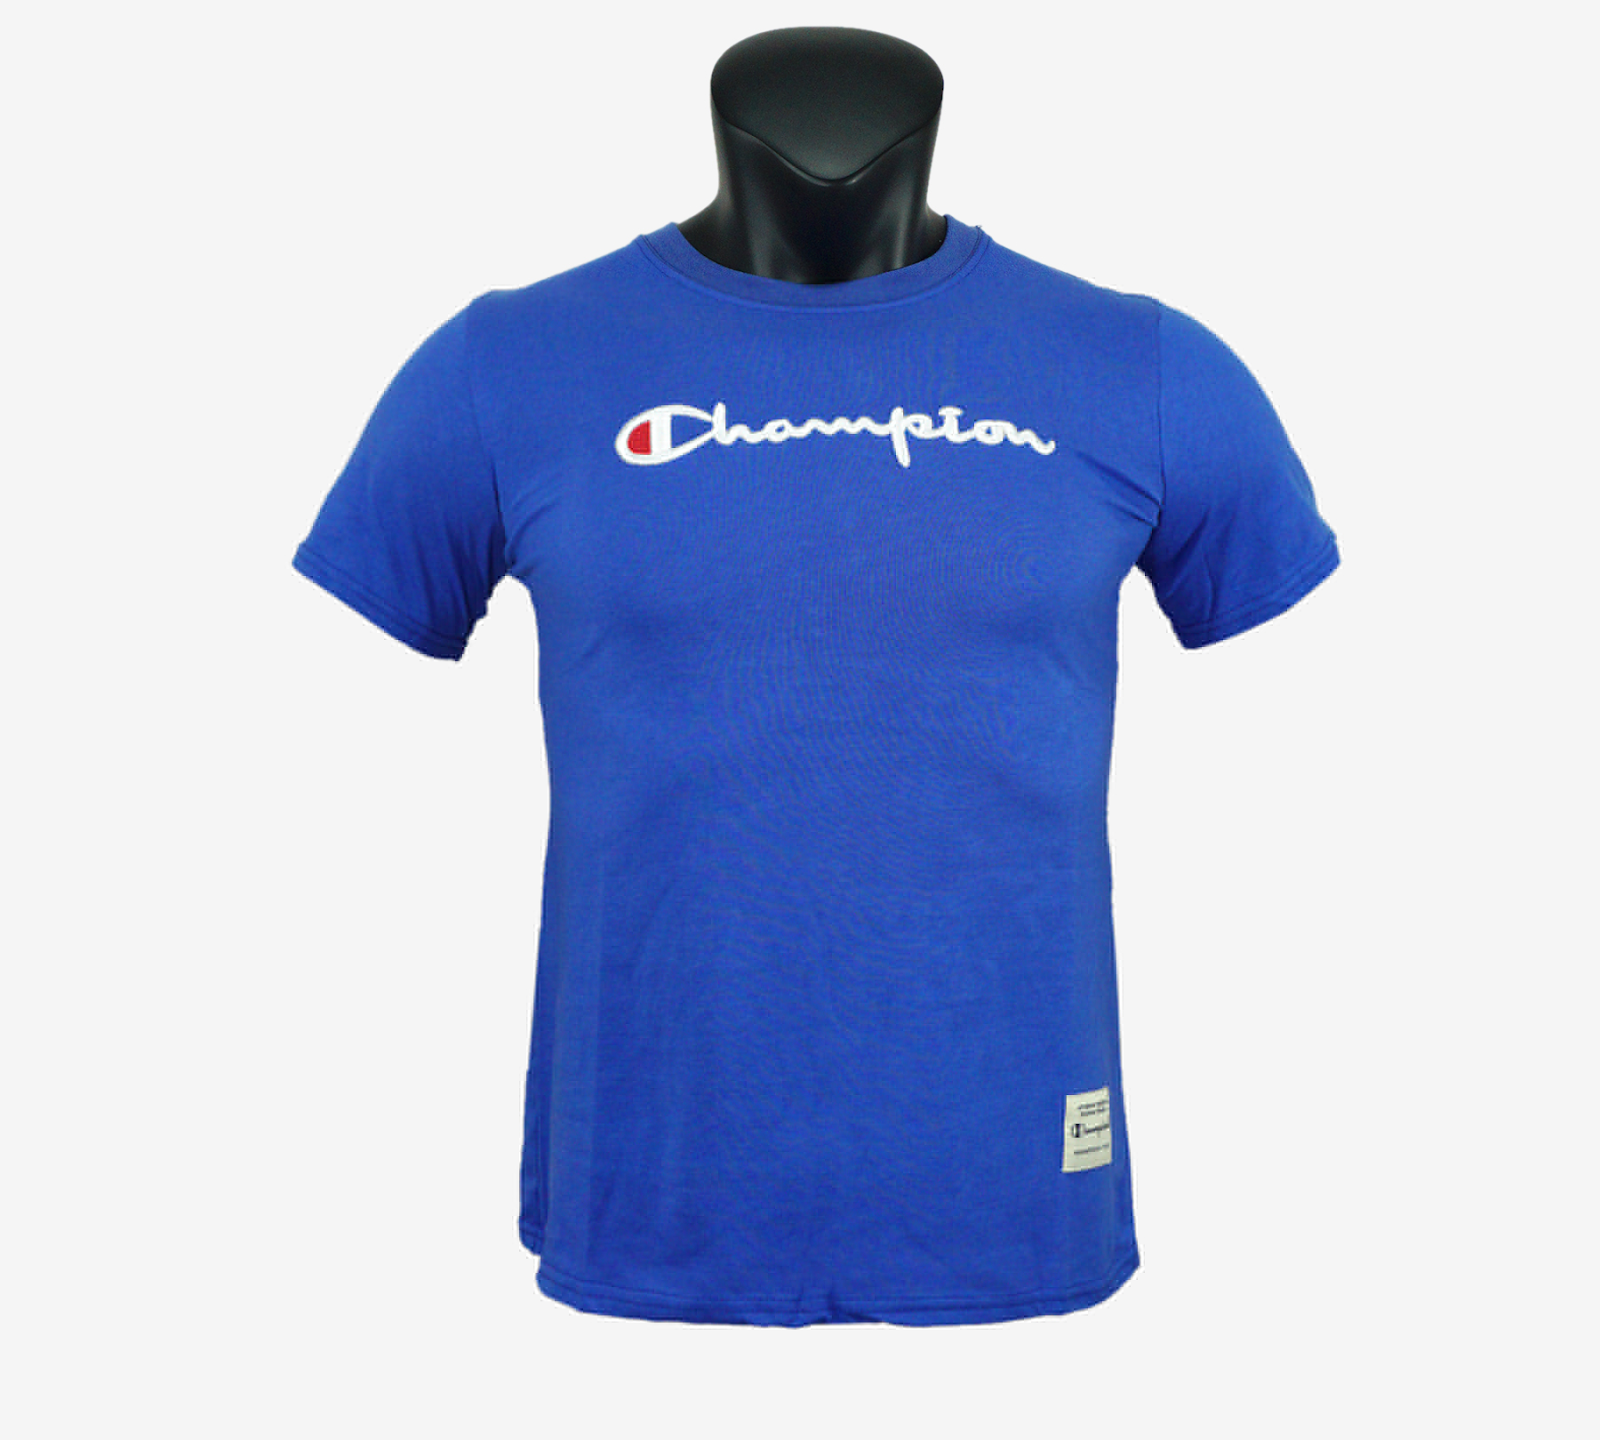 T-SHIRT CHAMPION BLUE